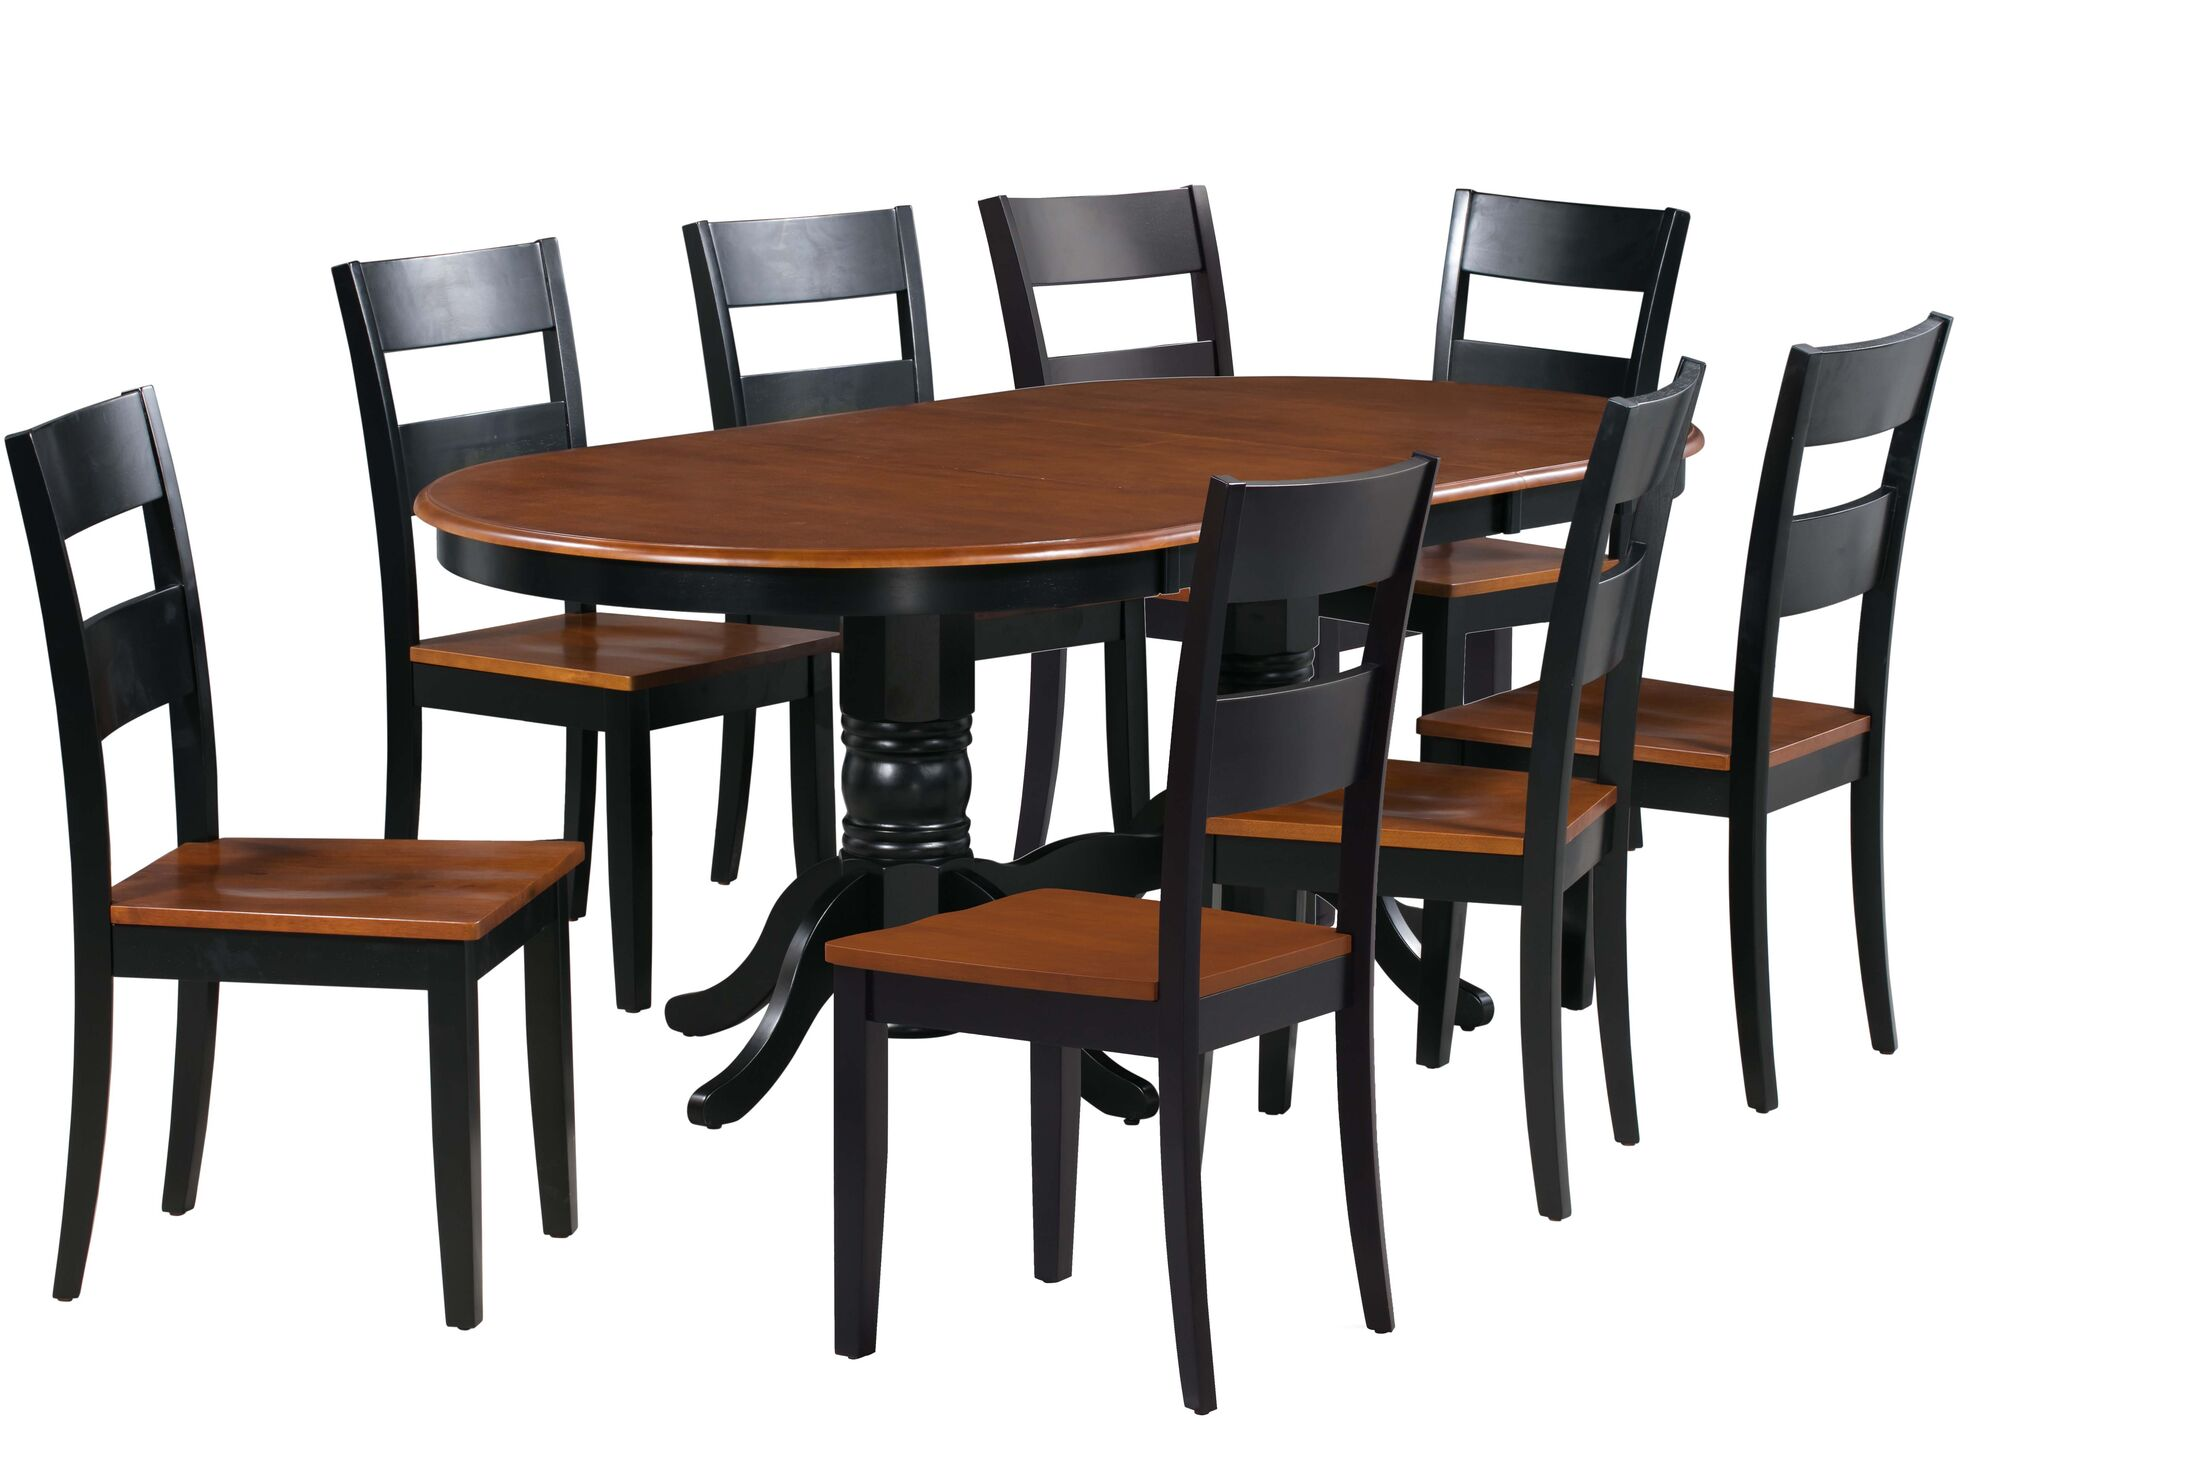 Dining Table Sets Dahlberg 9 Piece Extendable Solid Wood Dining Set